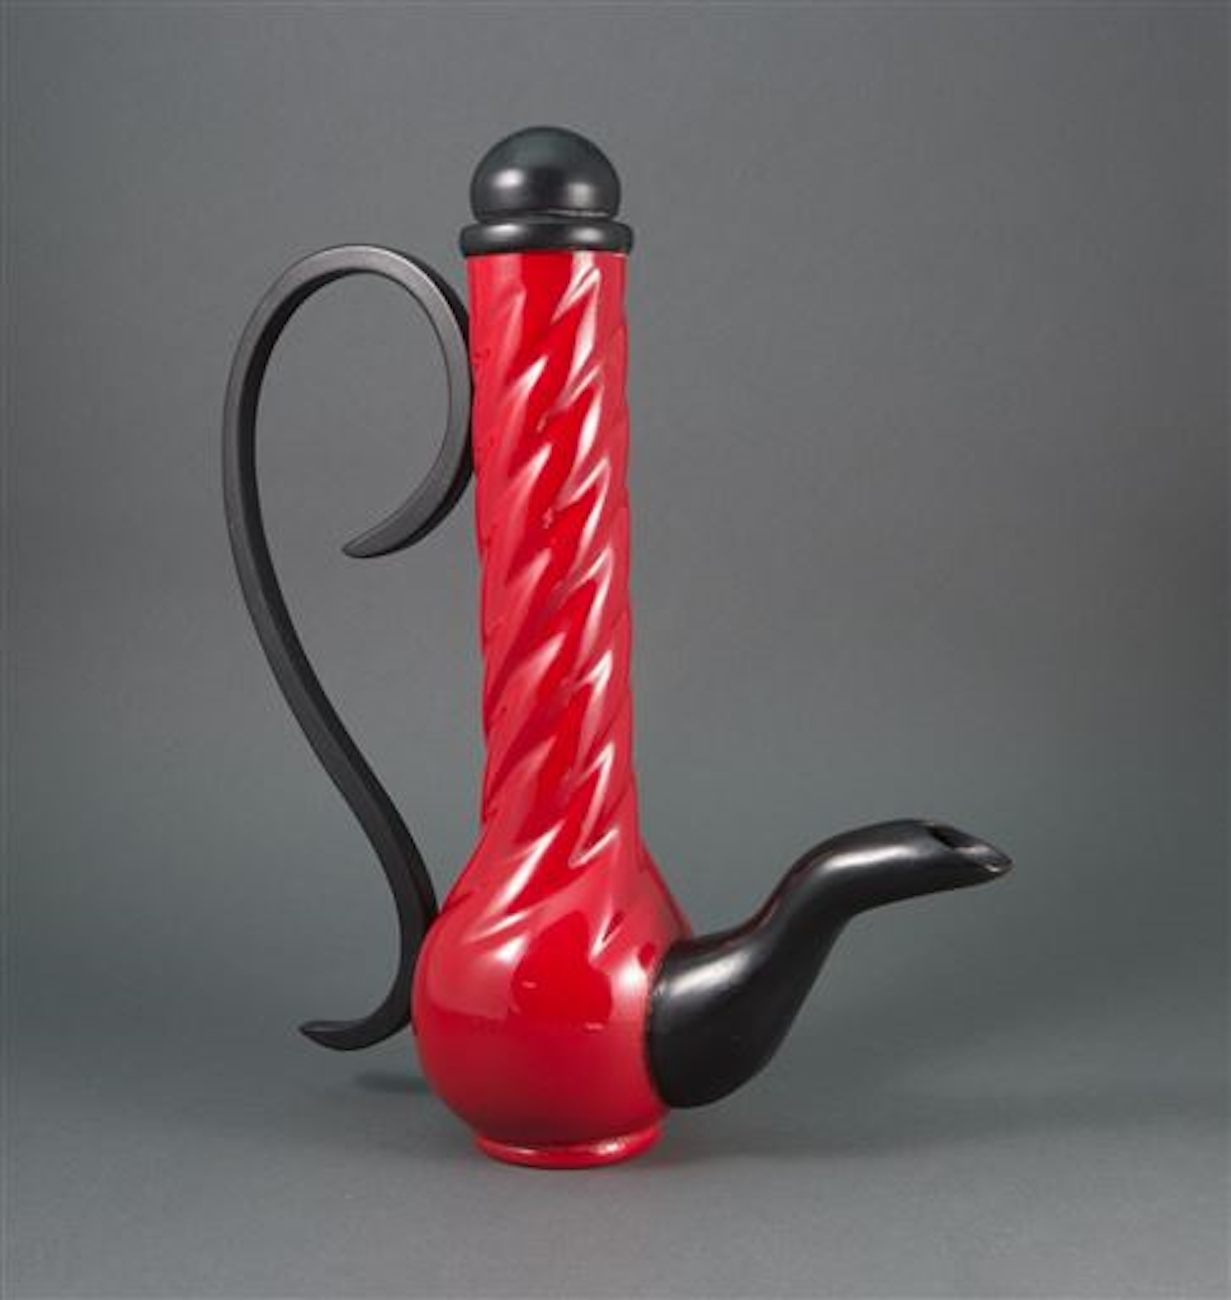 Work by Nancy Bowman, a 16-year woodturning veteran / The body was turned and hollowed on lathe, while the handle and spout were carved. The twist on body of tea pot is laid out on the lathe using an index wheel and then hand-carved off lathe, and lacquered in red and black / Image: Nancy Bowman{ }// Published: 4.18.19